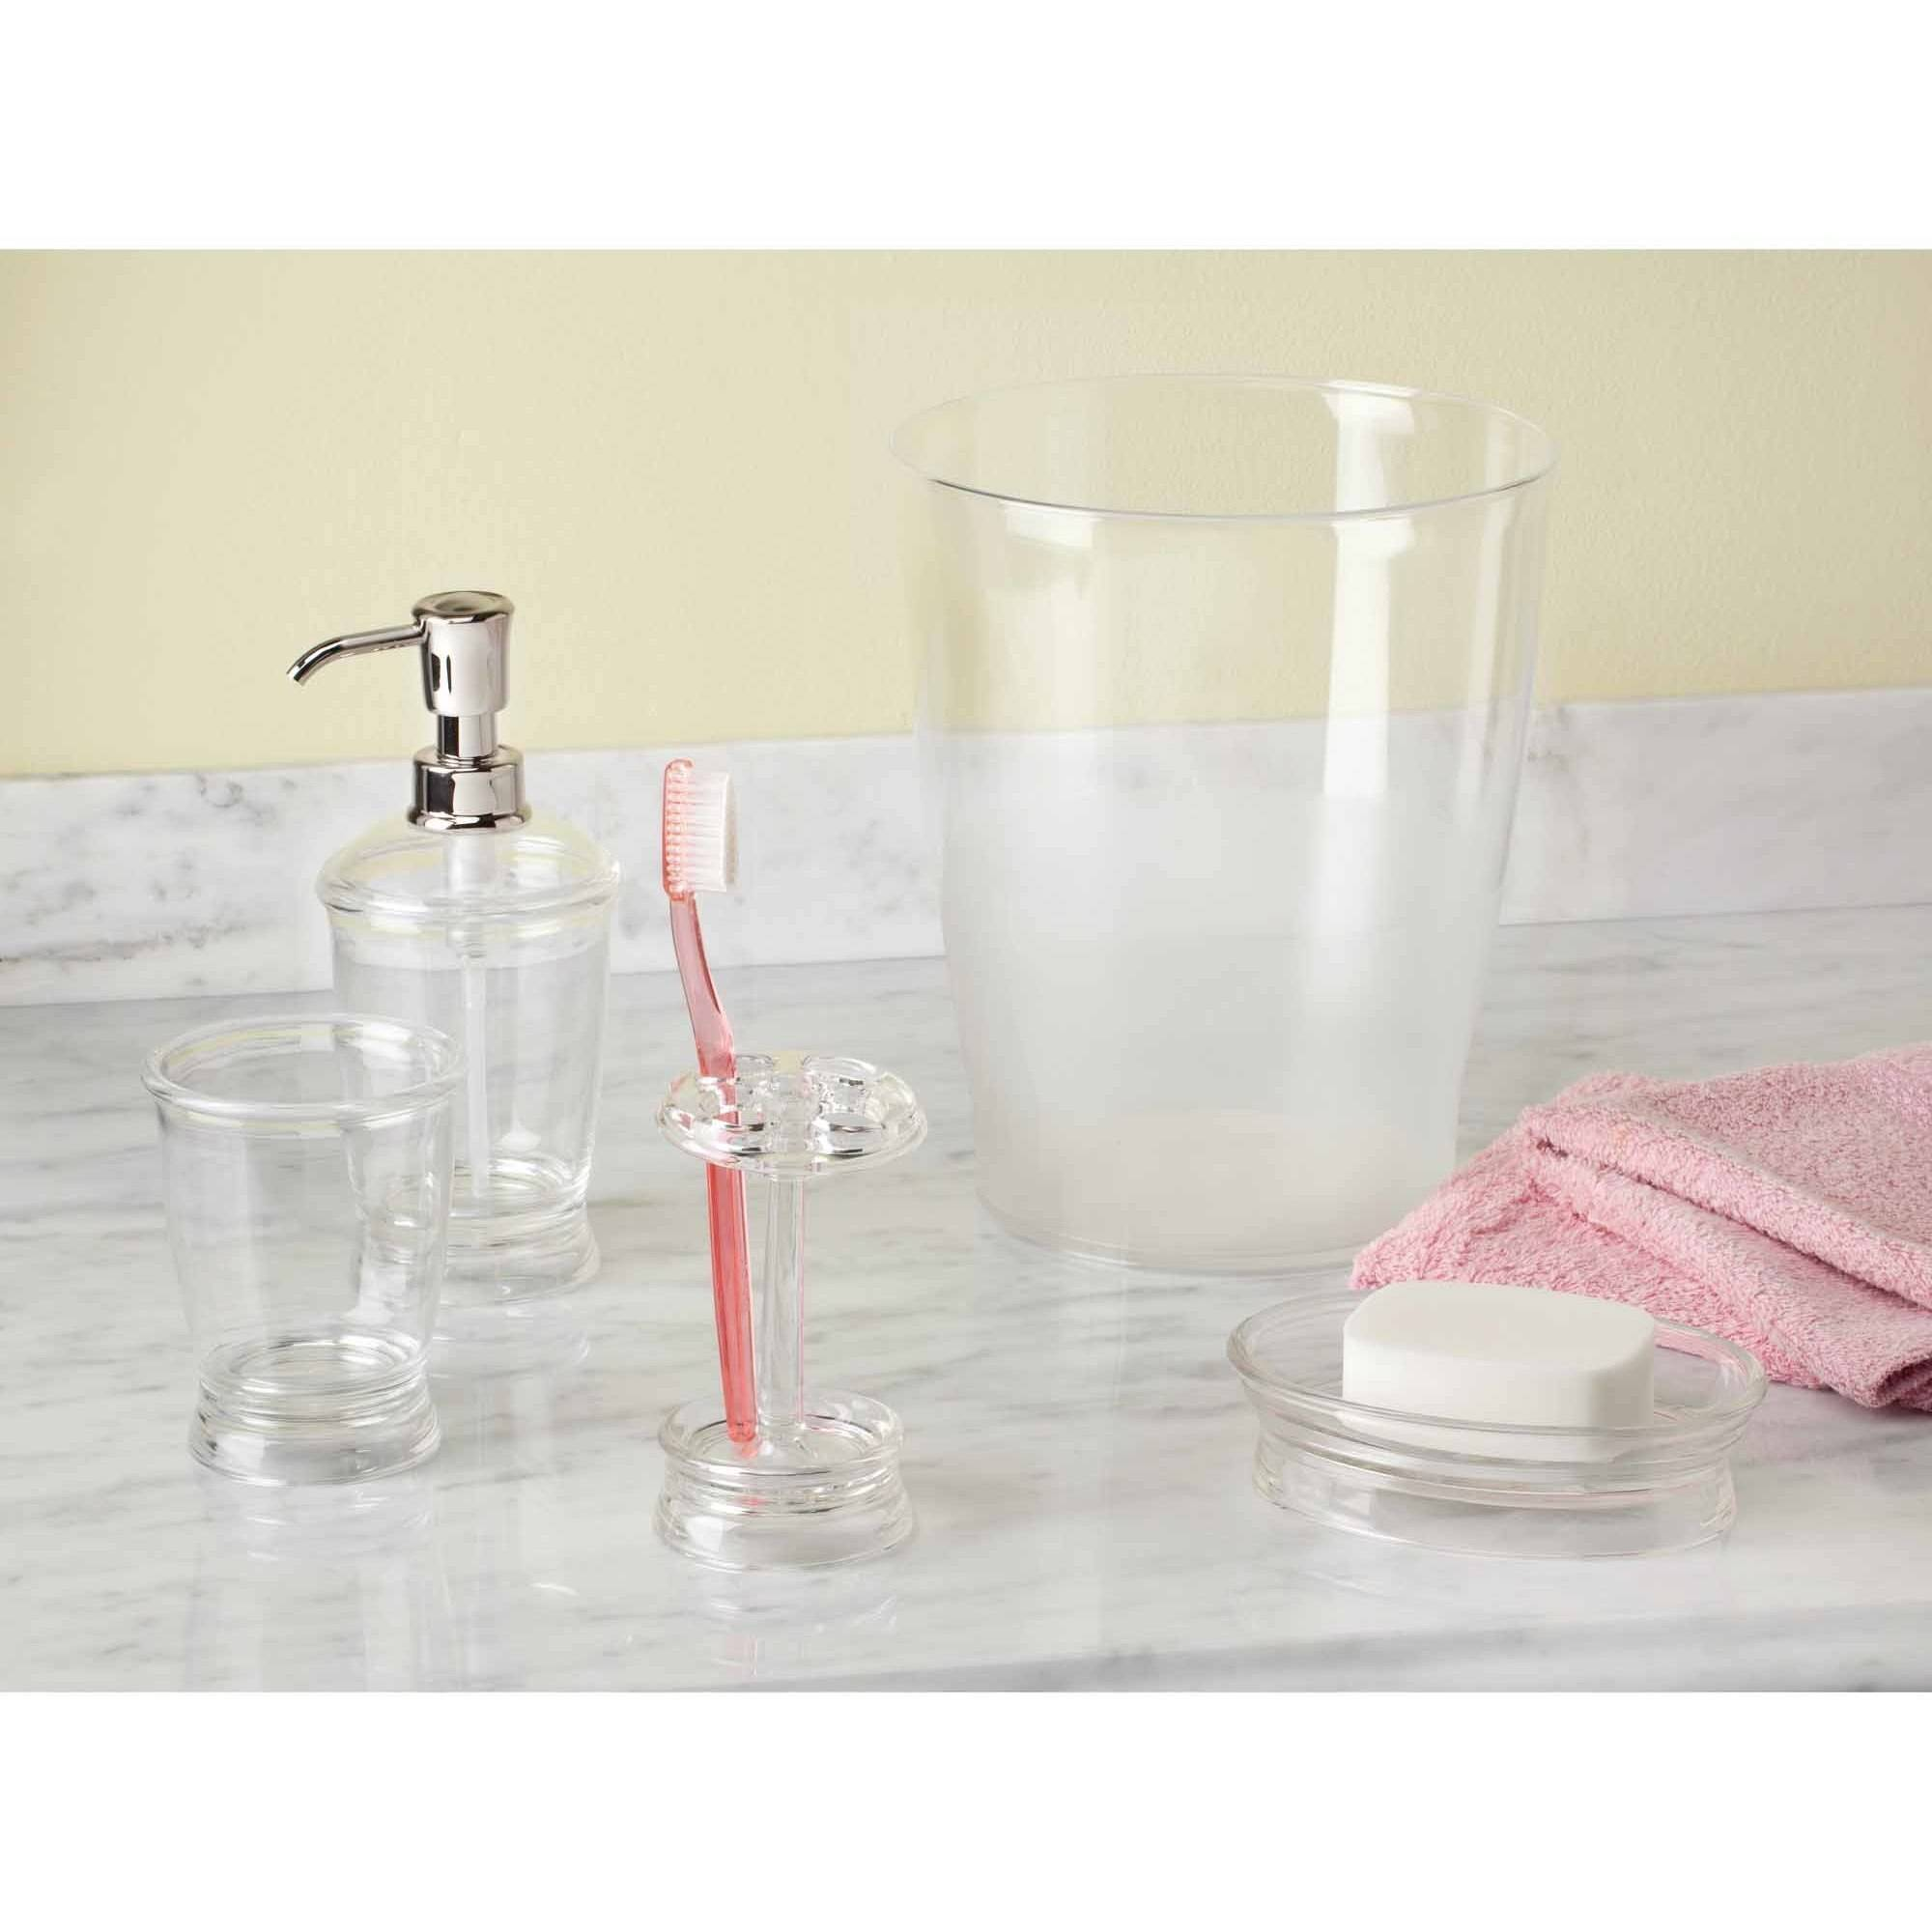 InterDesign Franklin Bath Set, Pump, Toothbrush Stand, Tumbler, Soap Dish and Waste Can by INTERDESIGN